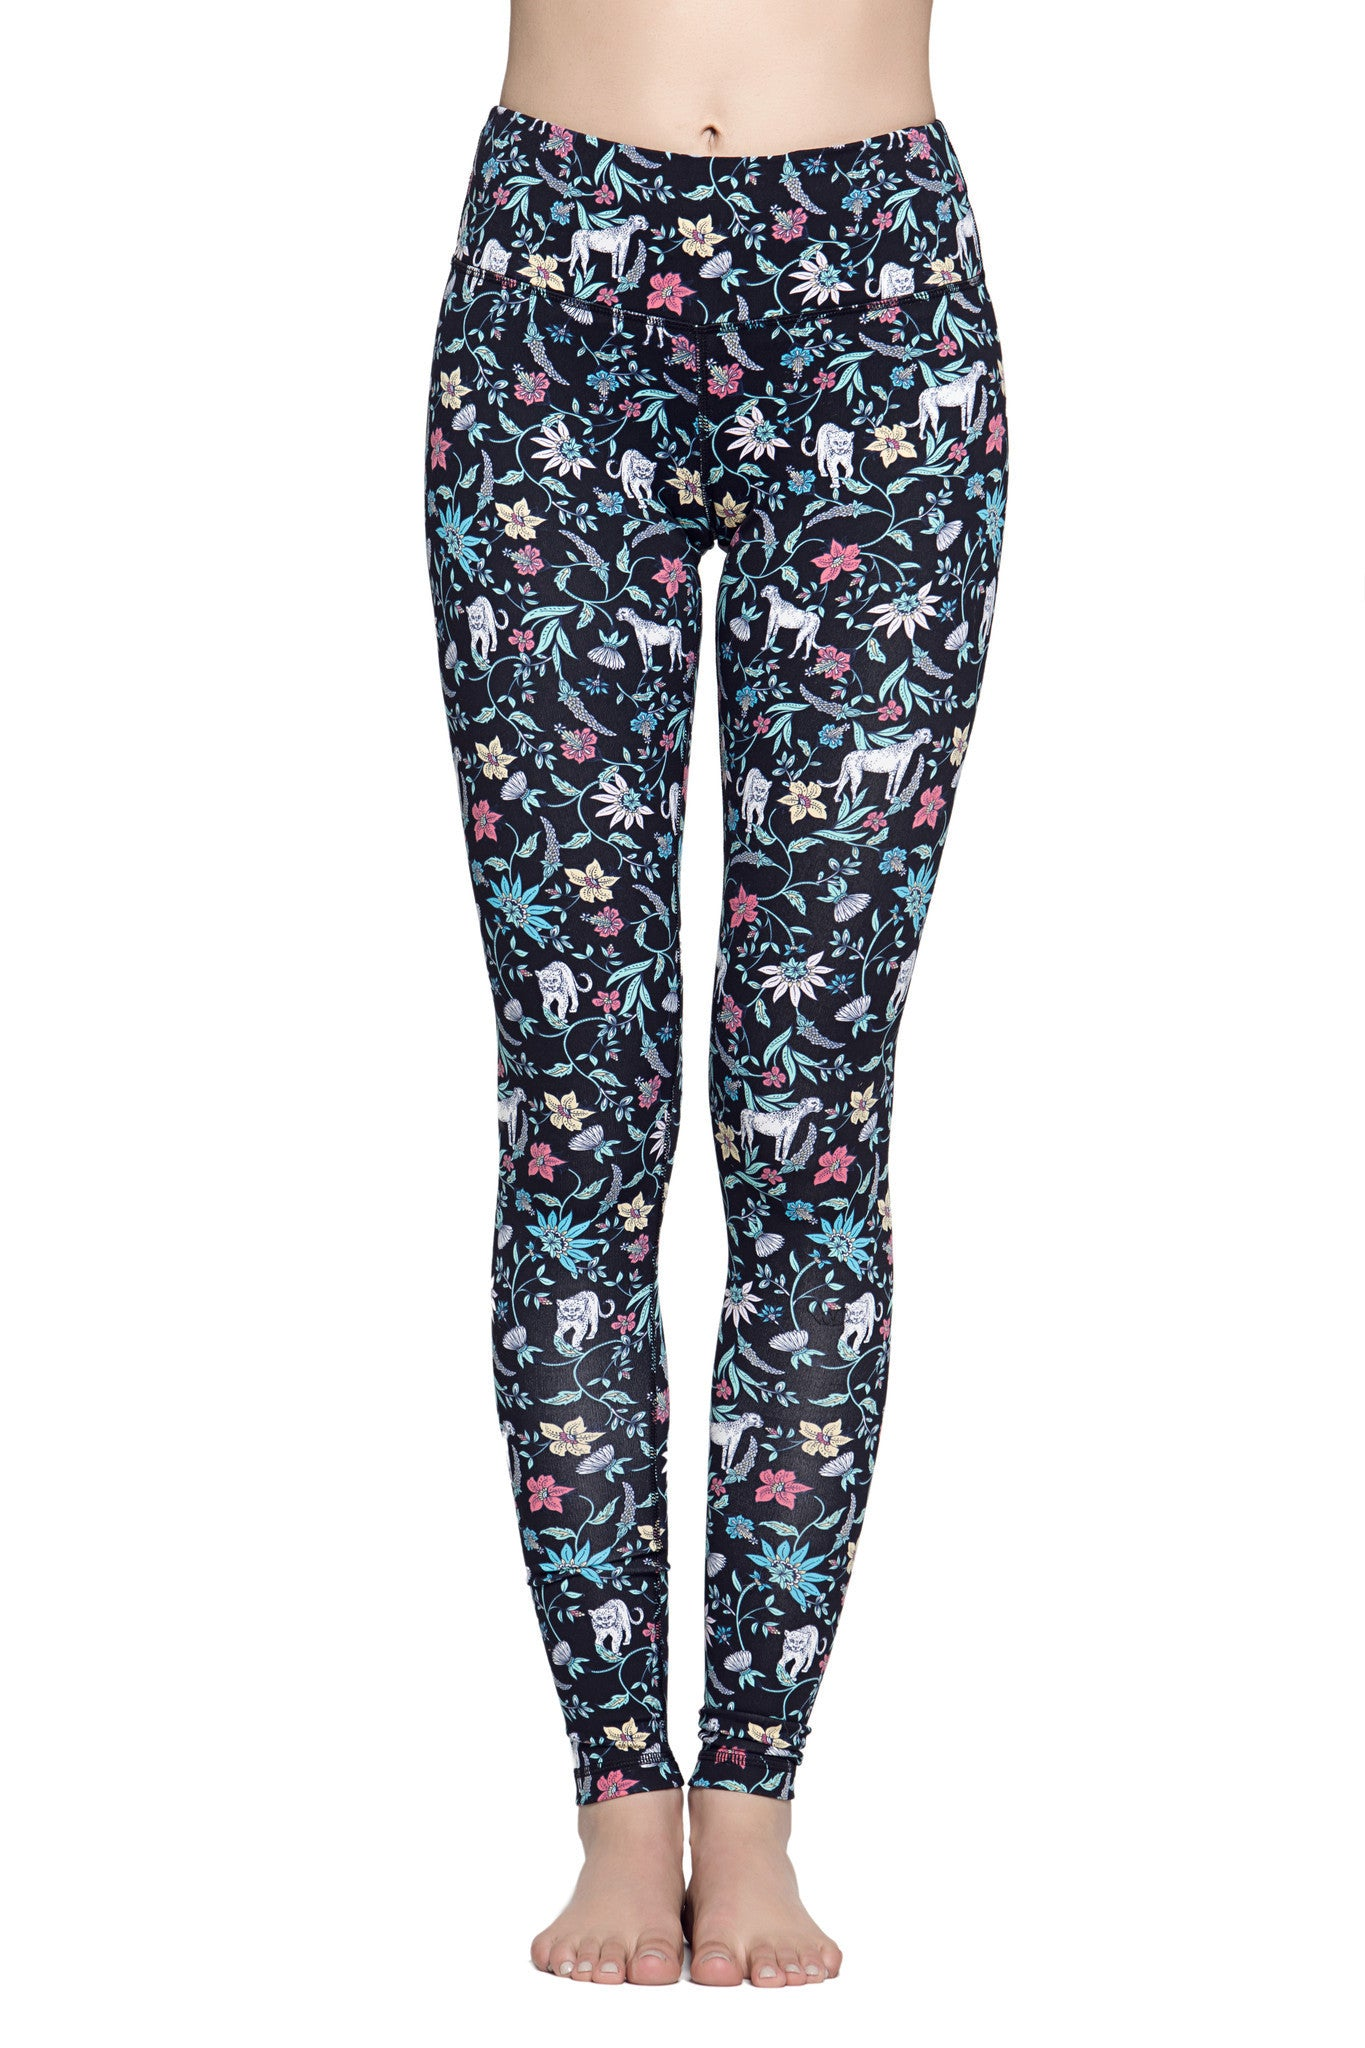 Lucky Graphic Legging - Cheetah Floral